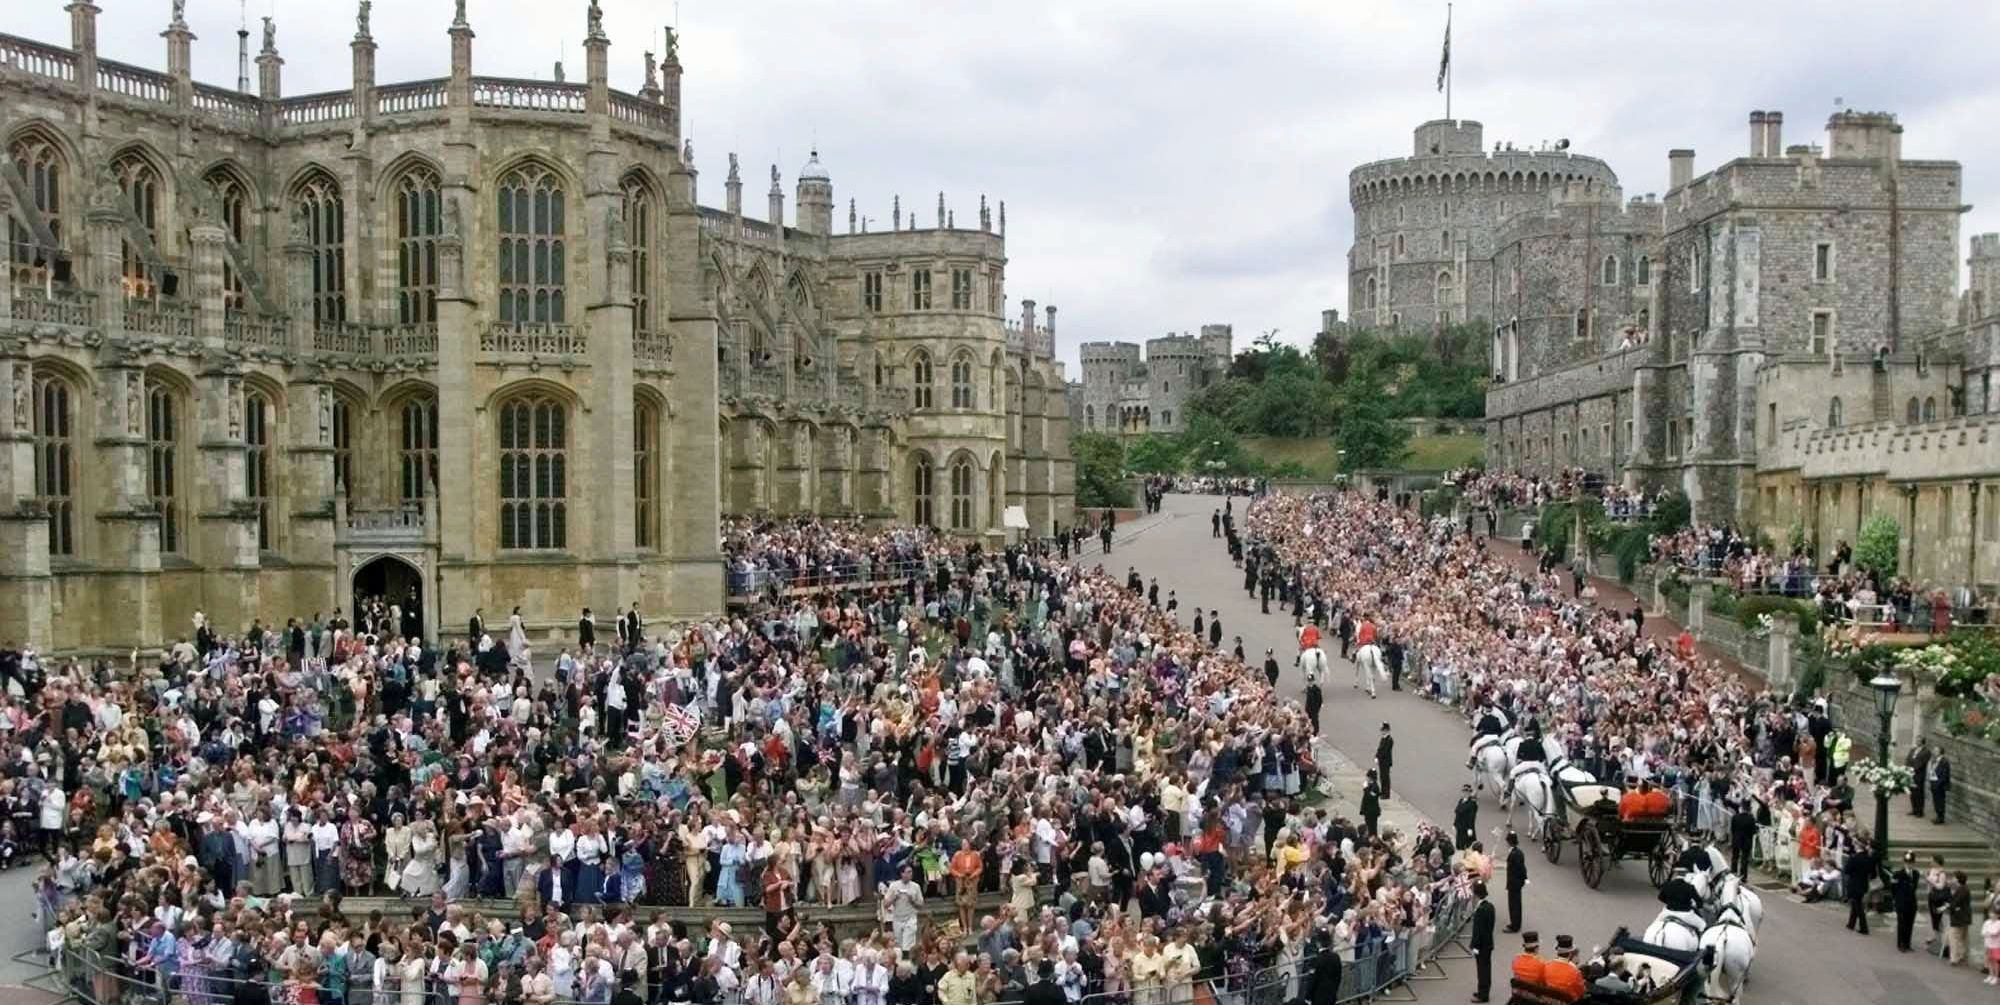 Weddings at Windsor Castle